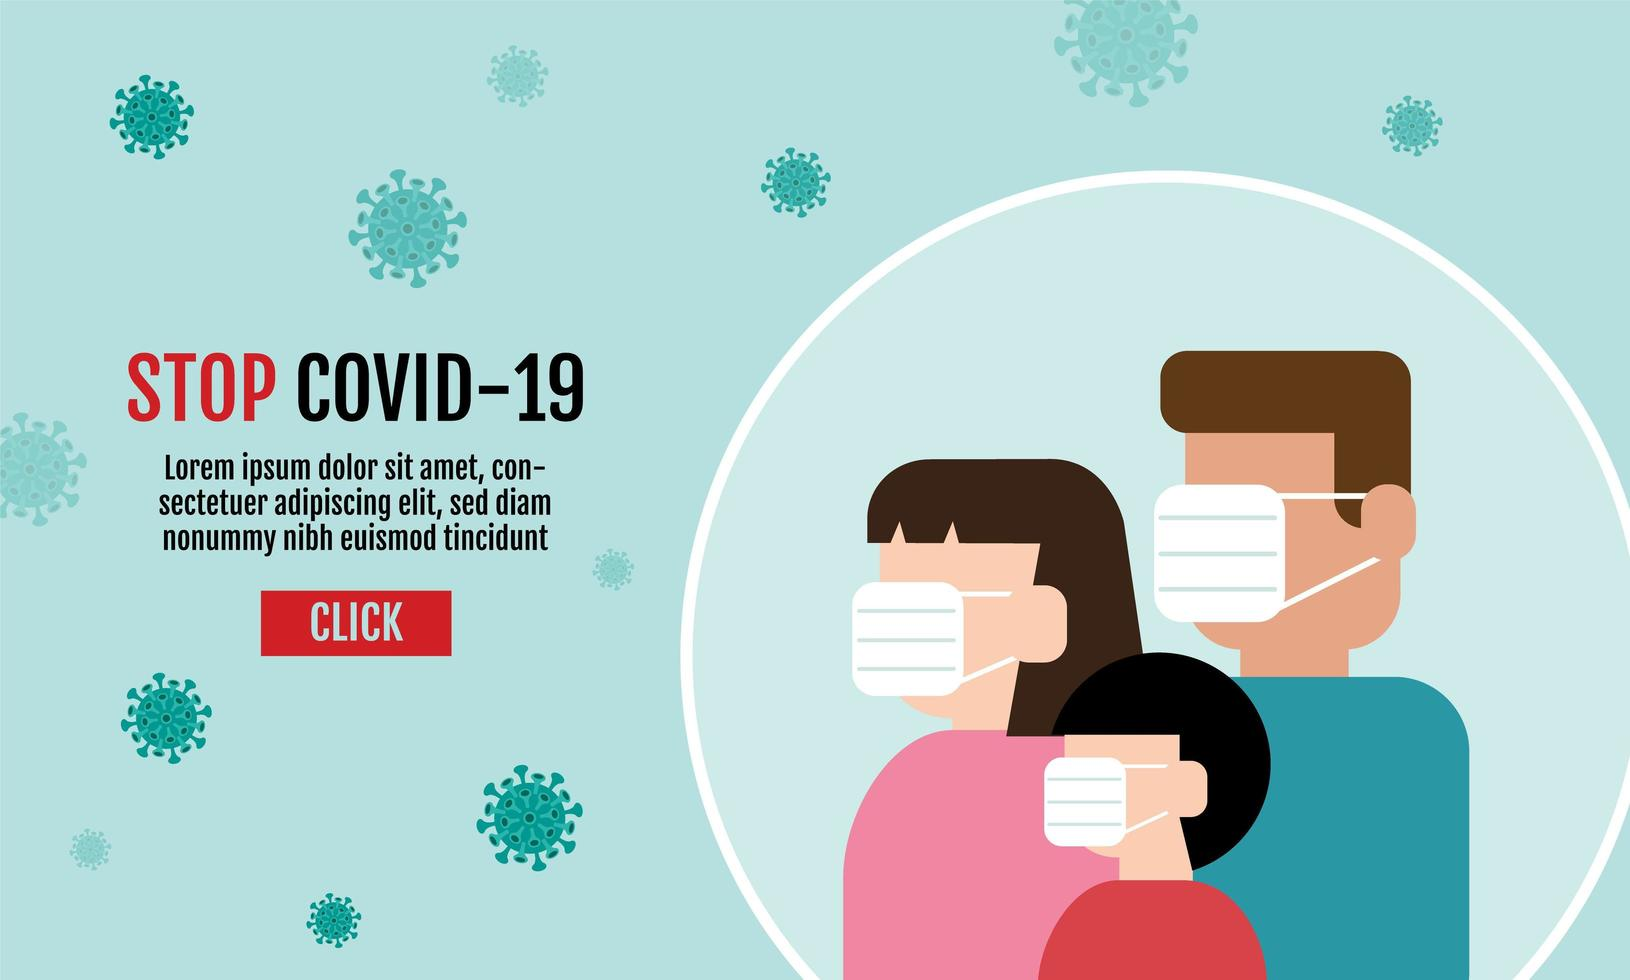 Stop Covid-19 Poster with People Wearing Masks  vector